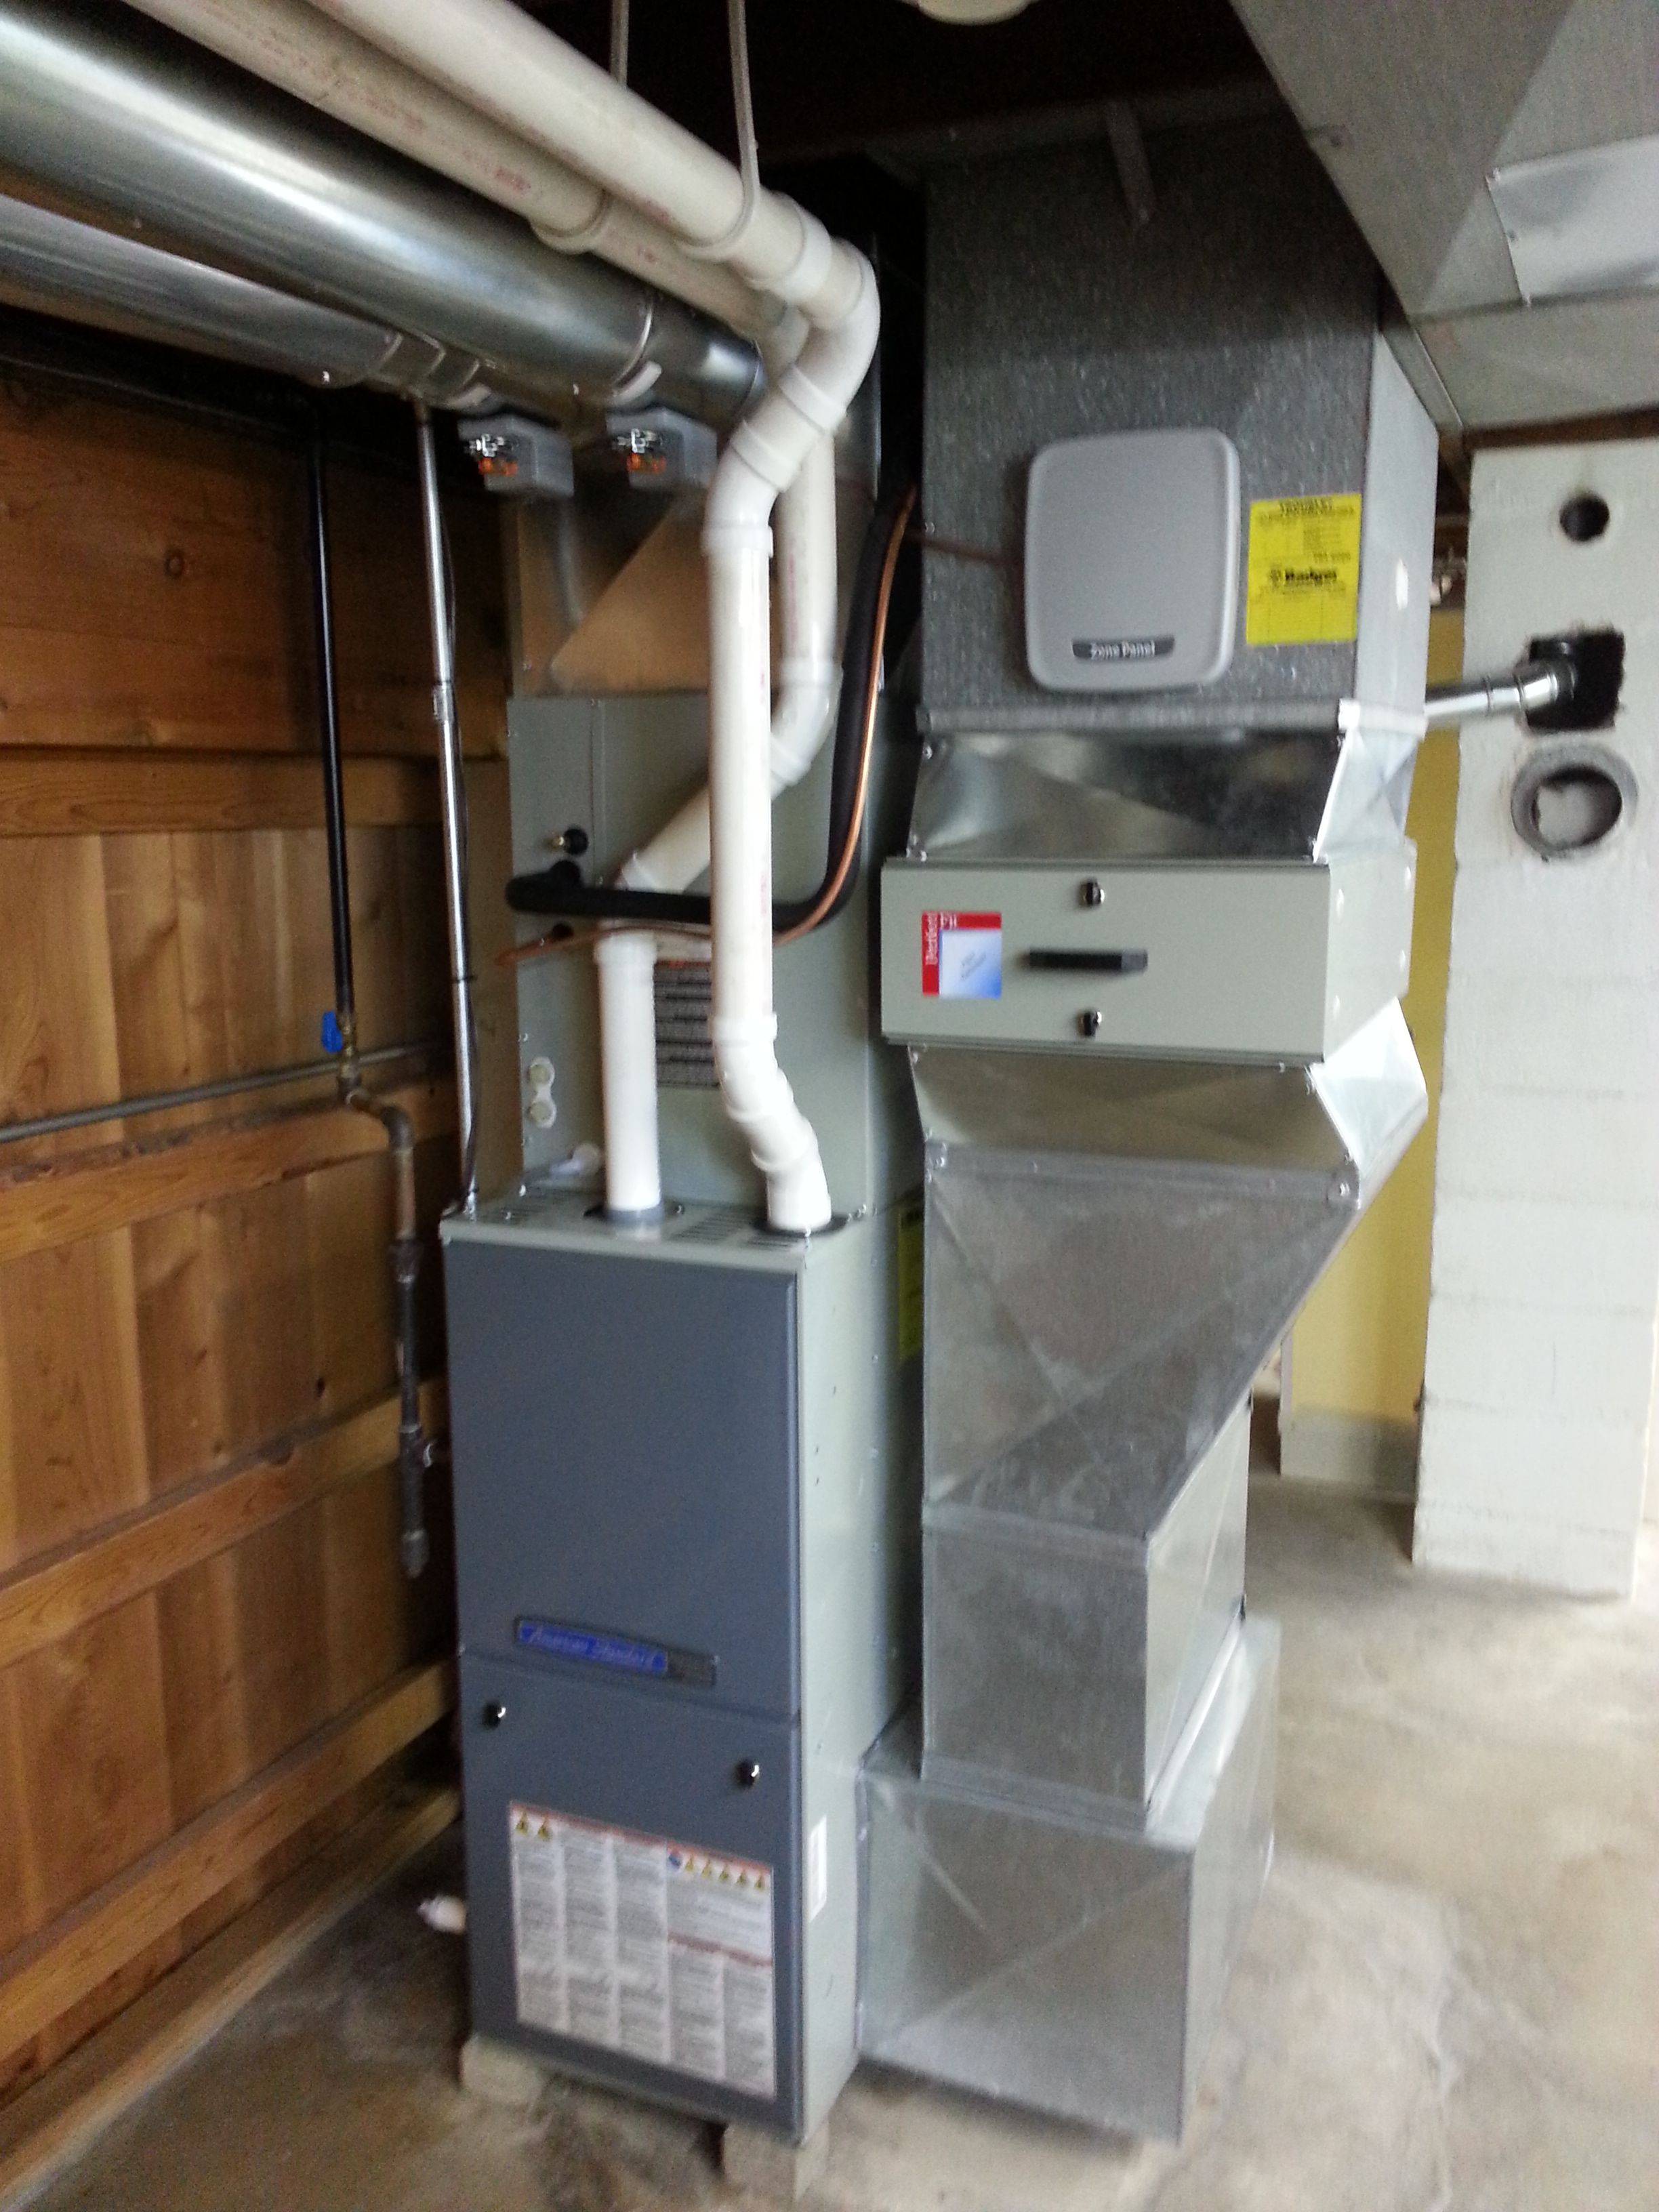 New Modulating Gas Furnace With Zoning Cooling Installation